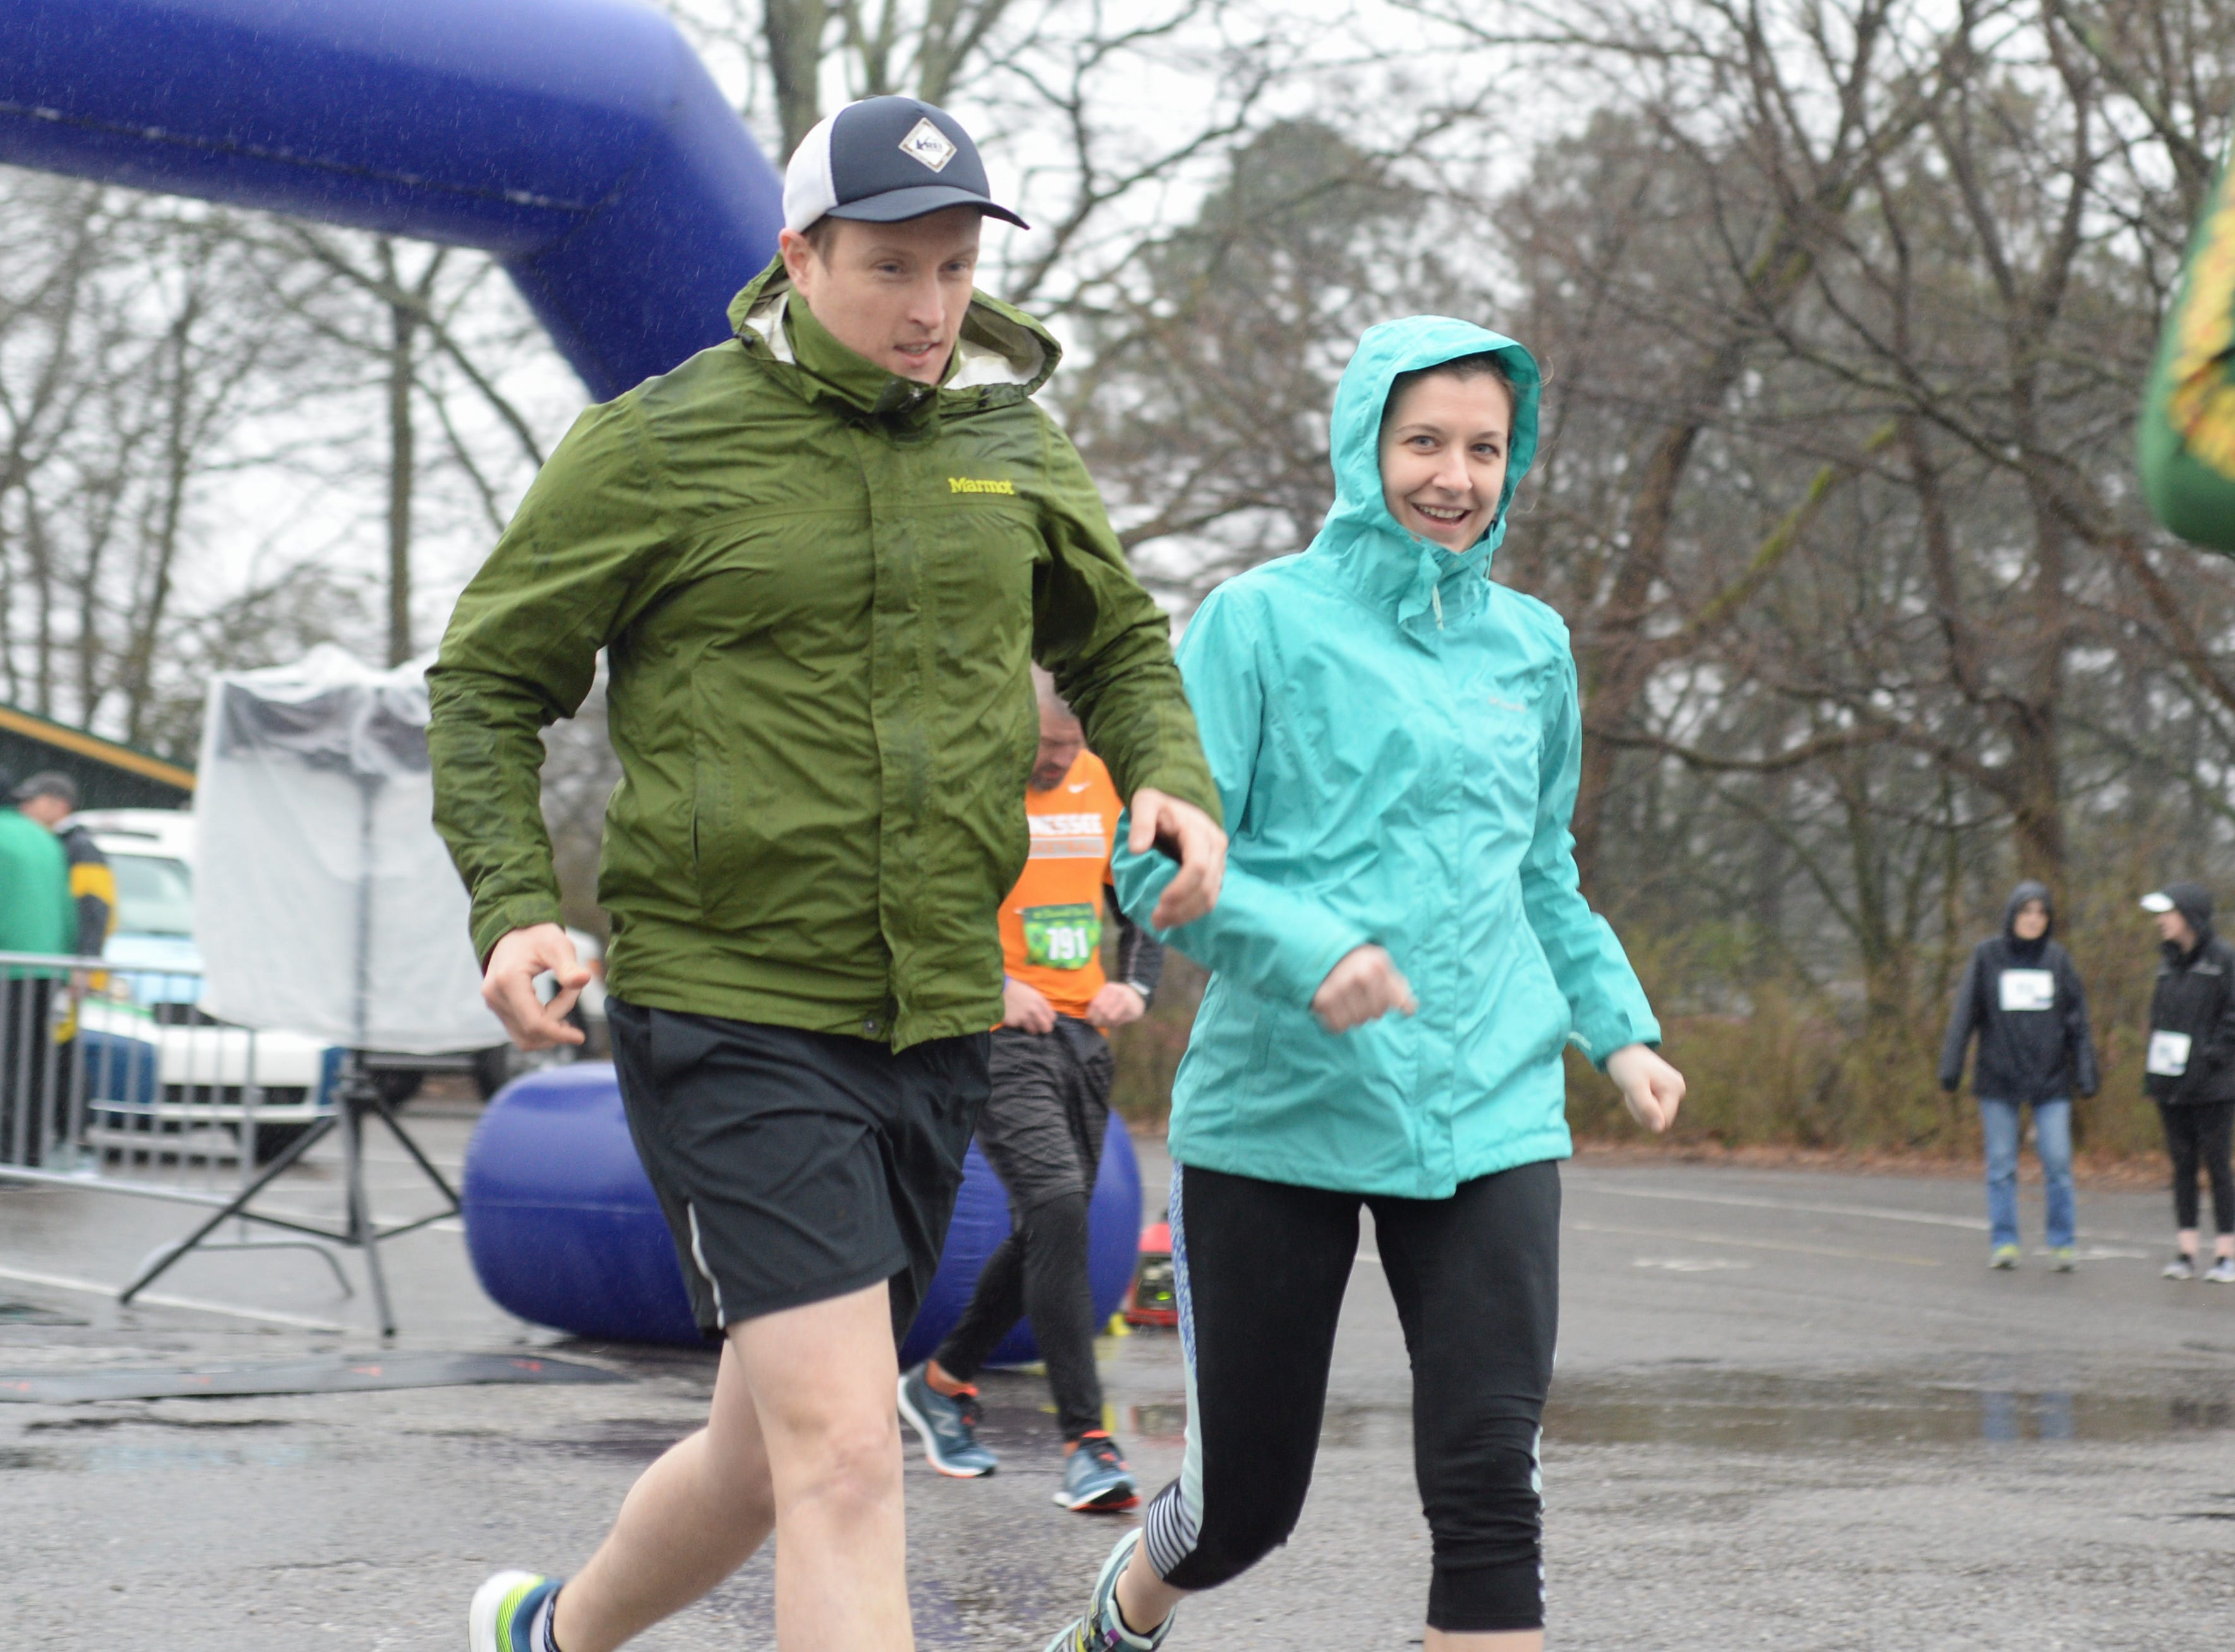 Participants brave the elements to participate in the Gallatin Shamrock Run on Saturday, March 9.